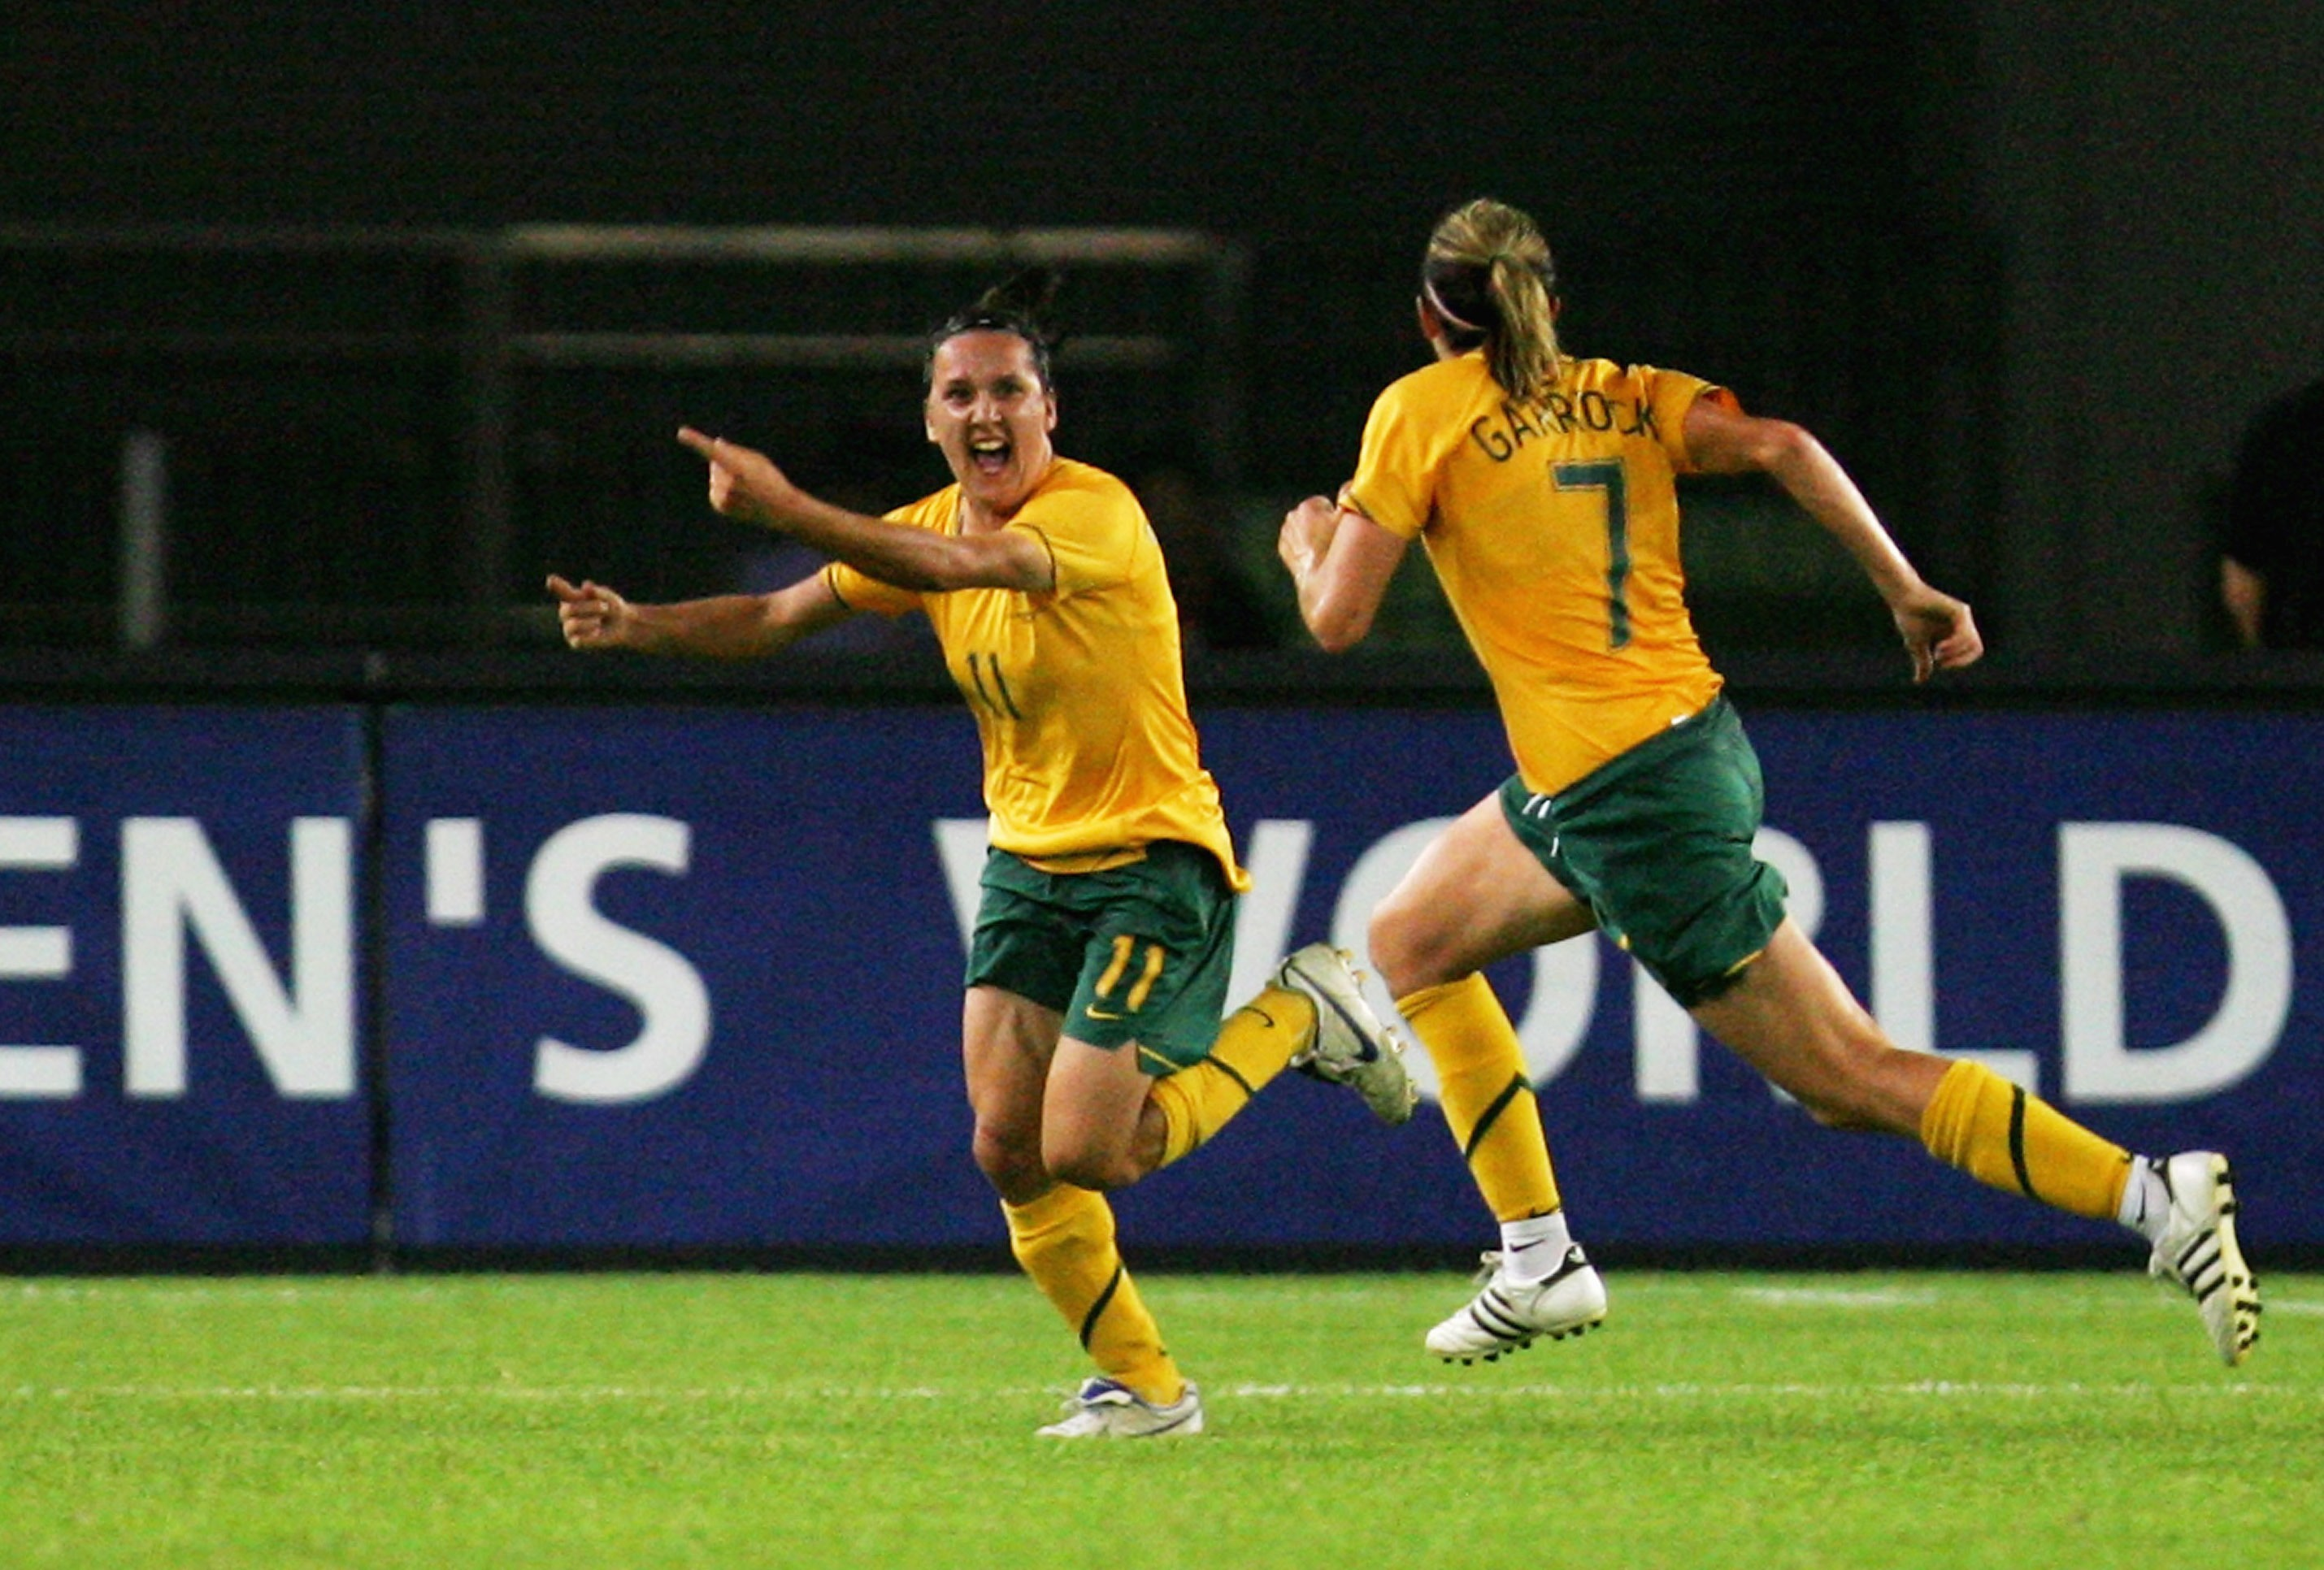 HANGZHOU, ZHEJIANG - SEPTEMBER 15:  Lisa De Vanna (L) of Australia celebrates a goal against Norway during the FIFA Women's World Cup 2007 Group C match between Australia and Norway at Hangzhou Dragon Stadium on September 15, 2007 in Hangzhou, Zhejiang pr